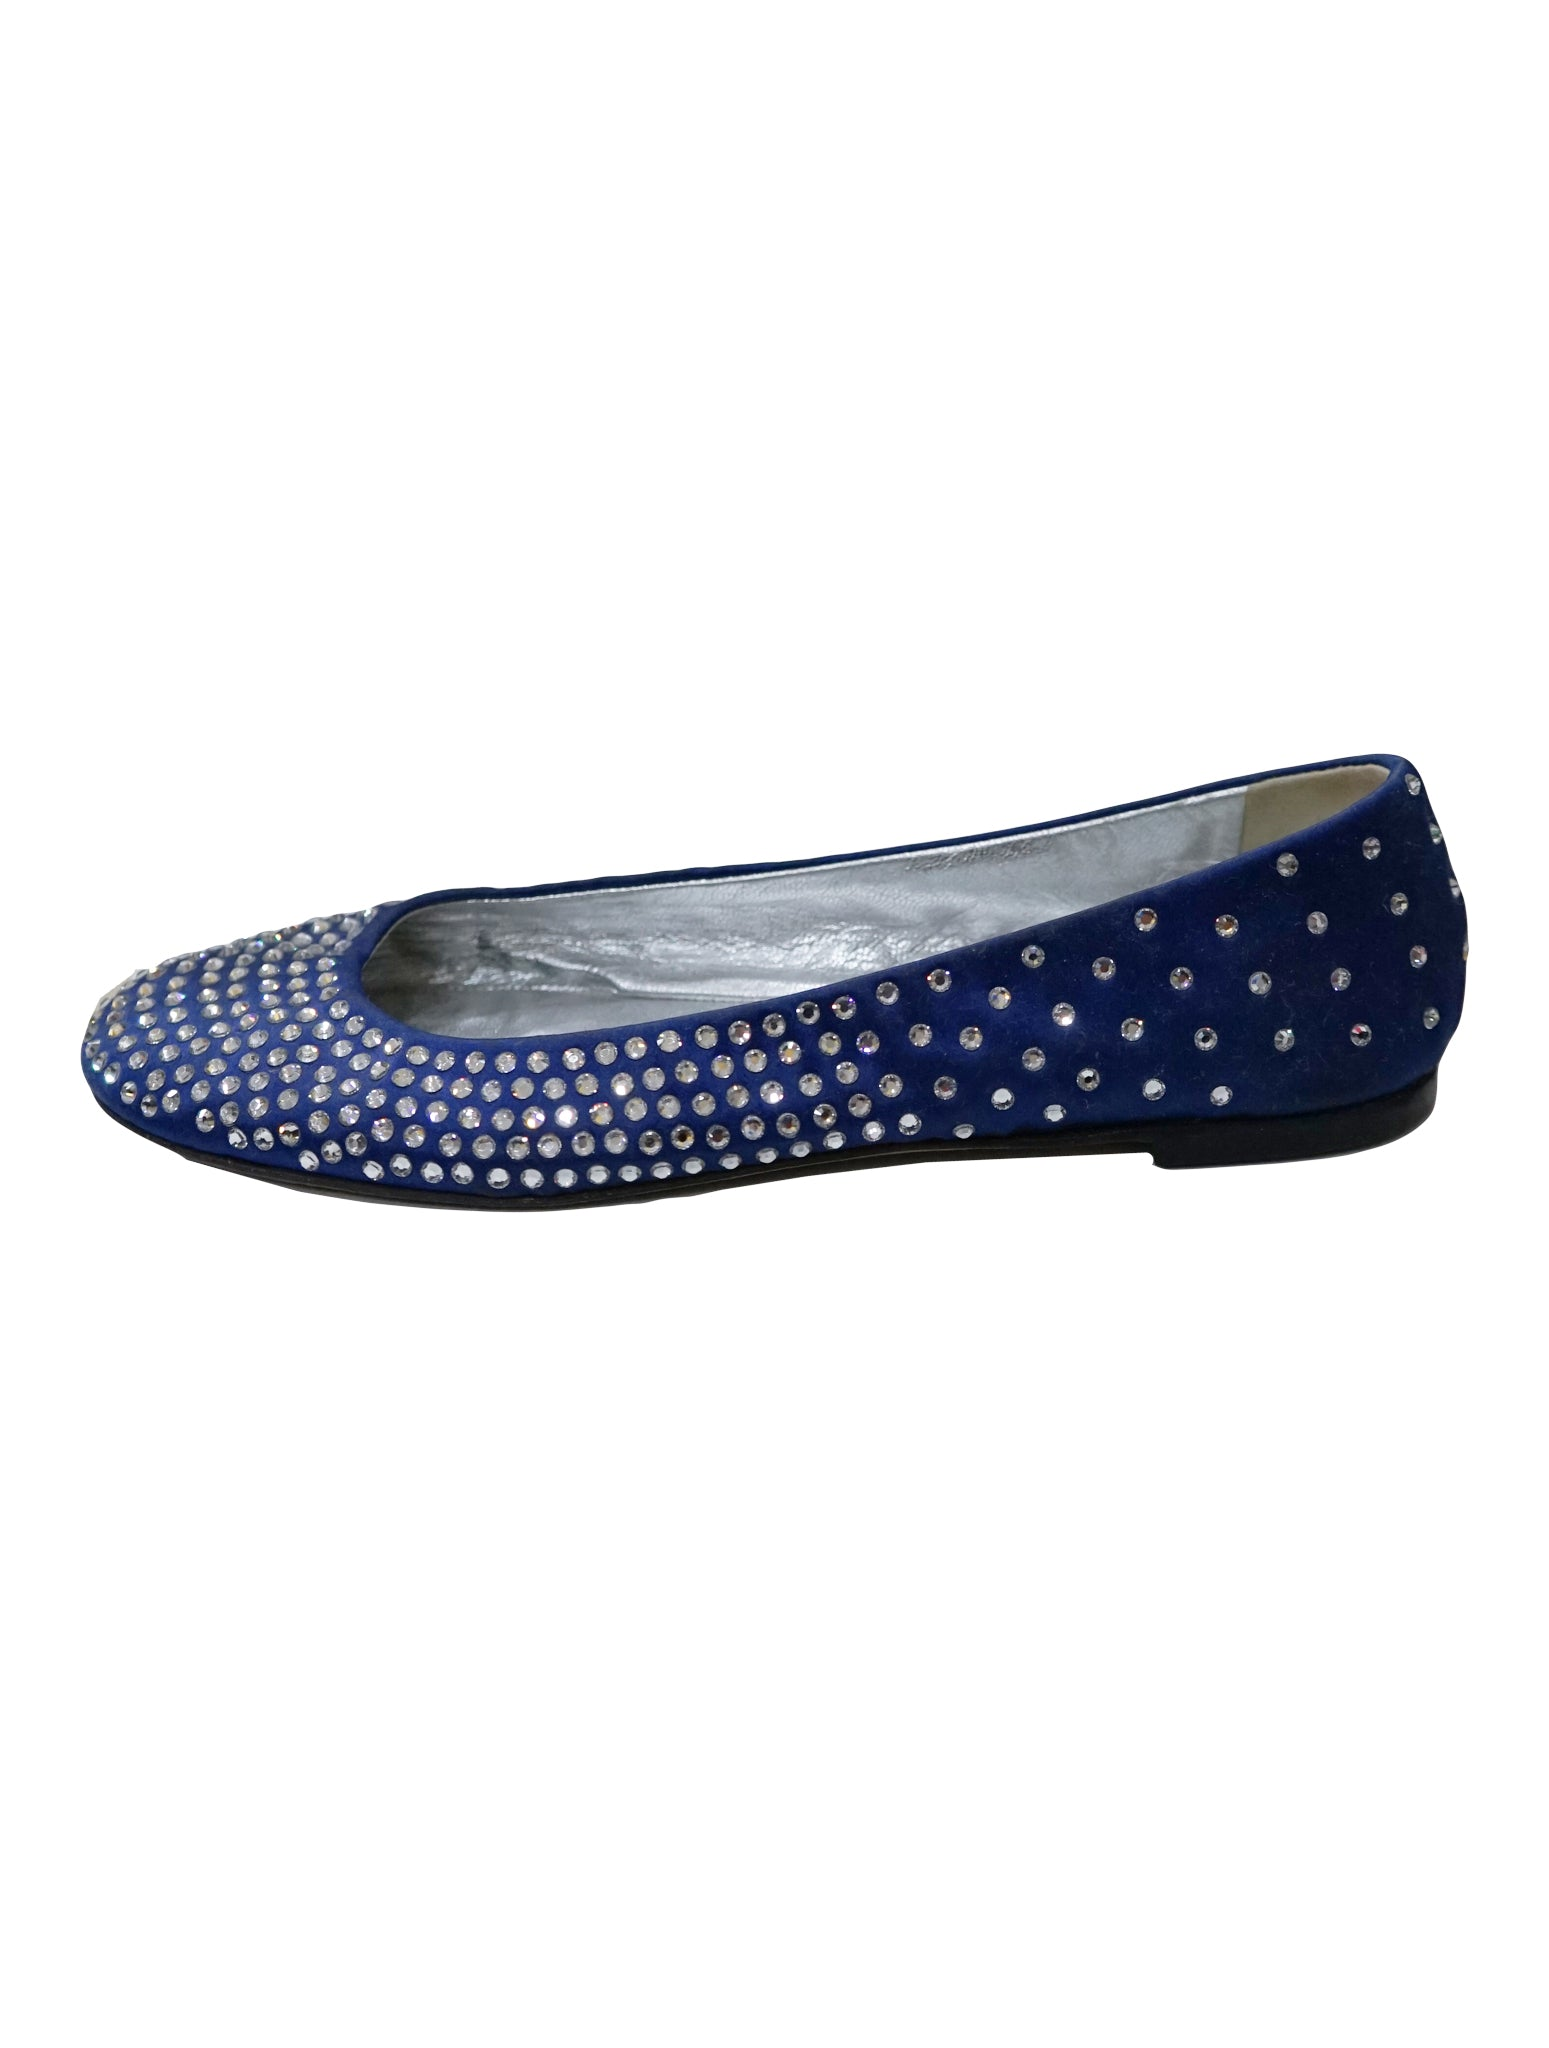 BLUE SATIN CRYSTAL STUDDED BALLET FLATS